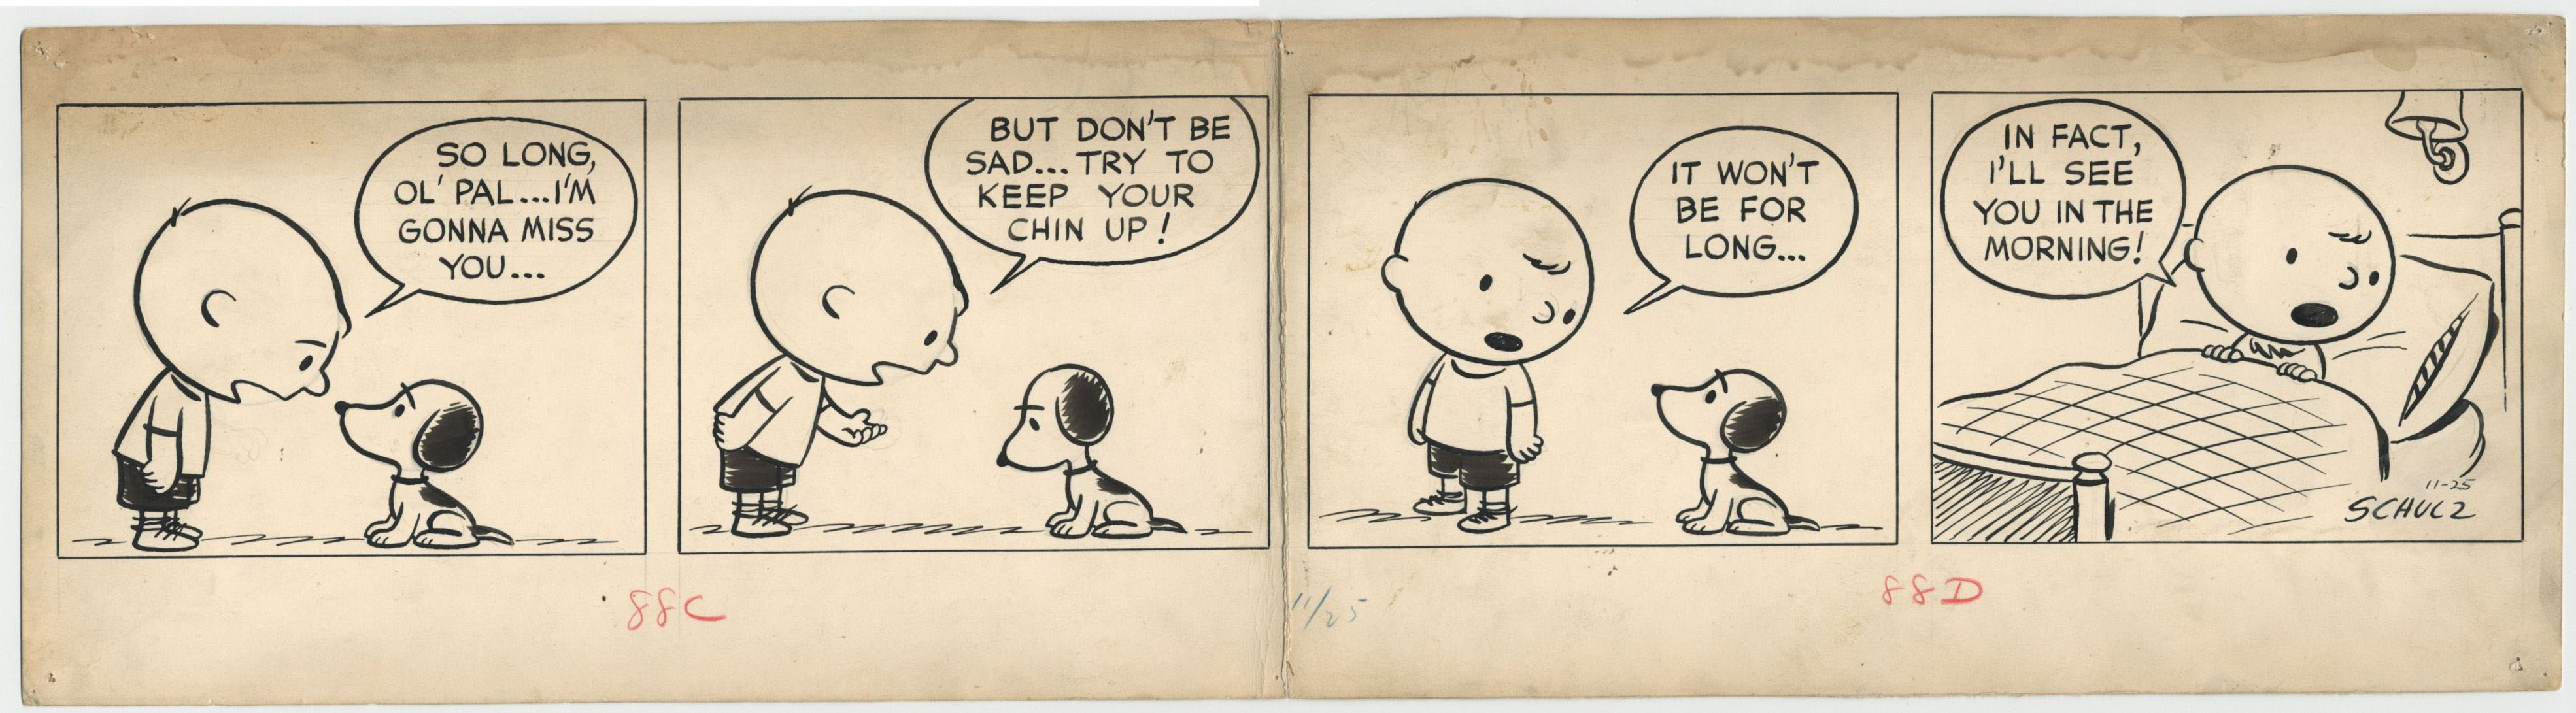 The Charles In Charlie Brown